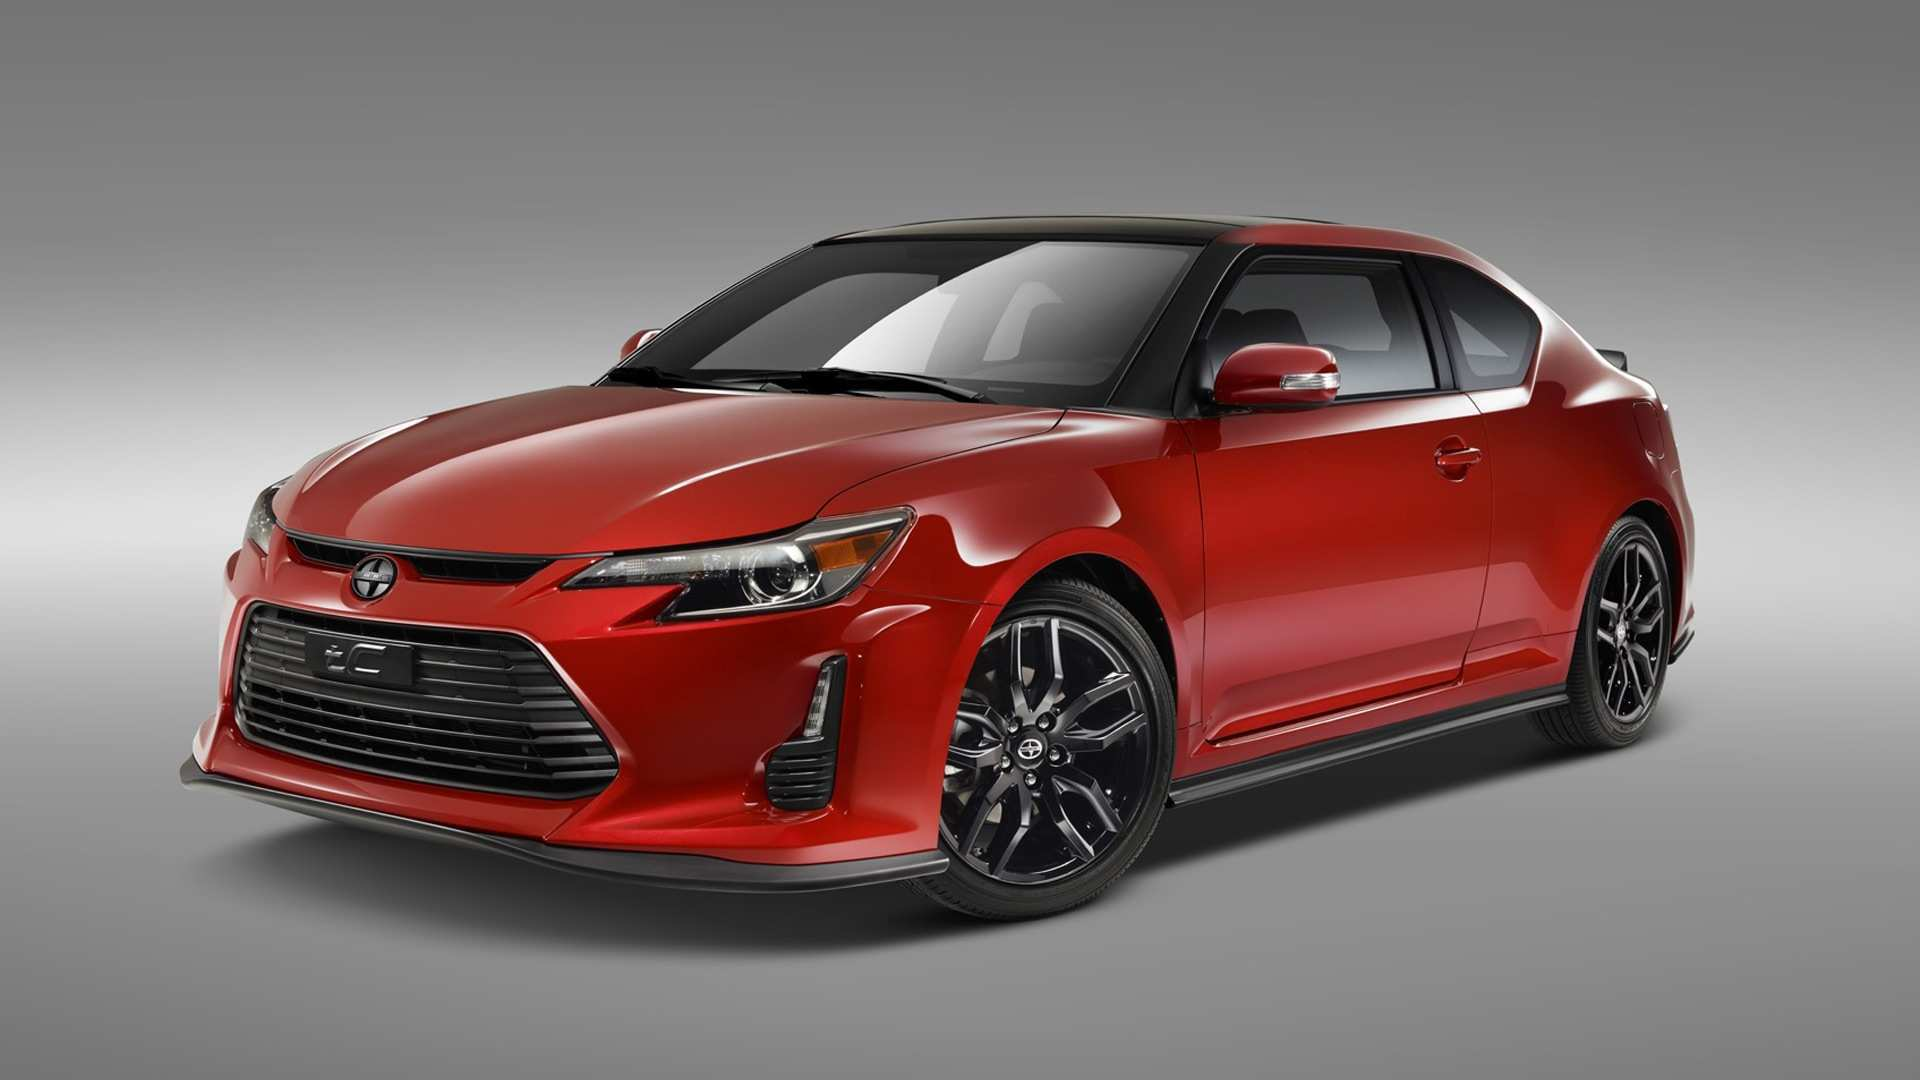 75 All New 2020 Scion Tced Engine